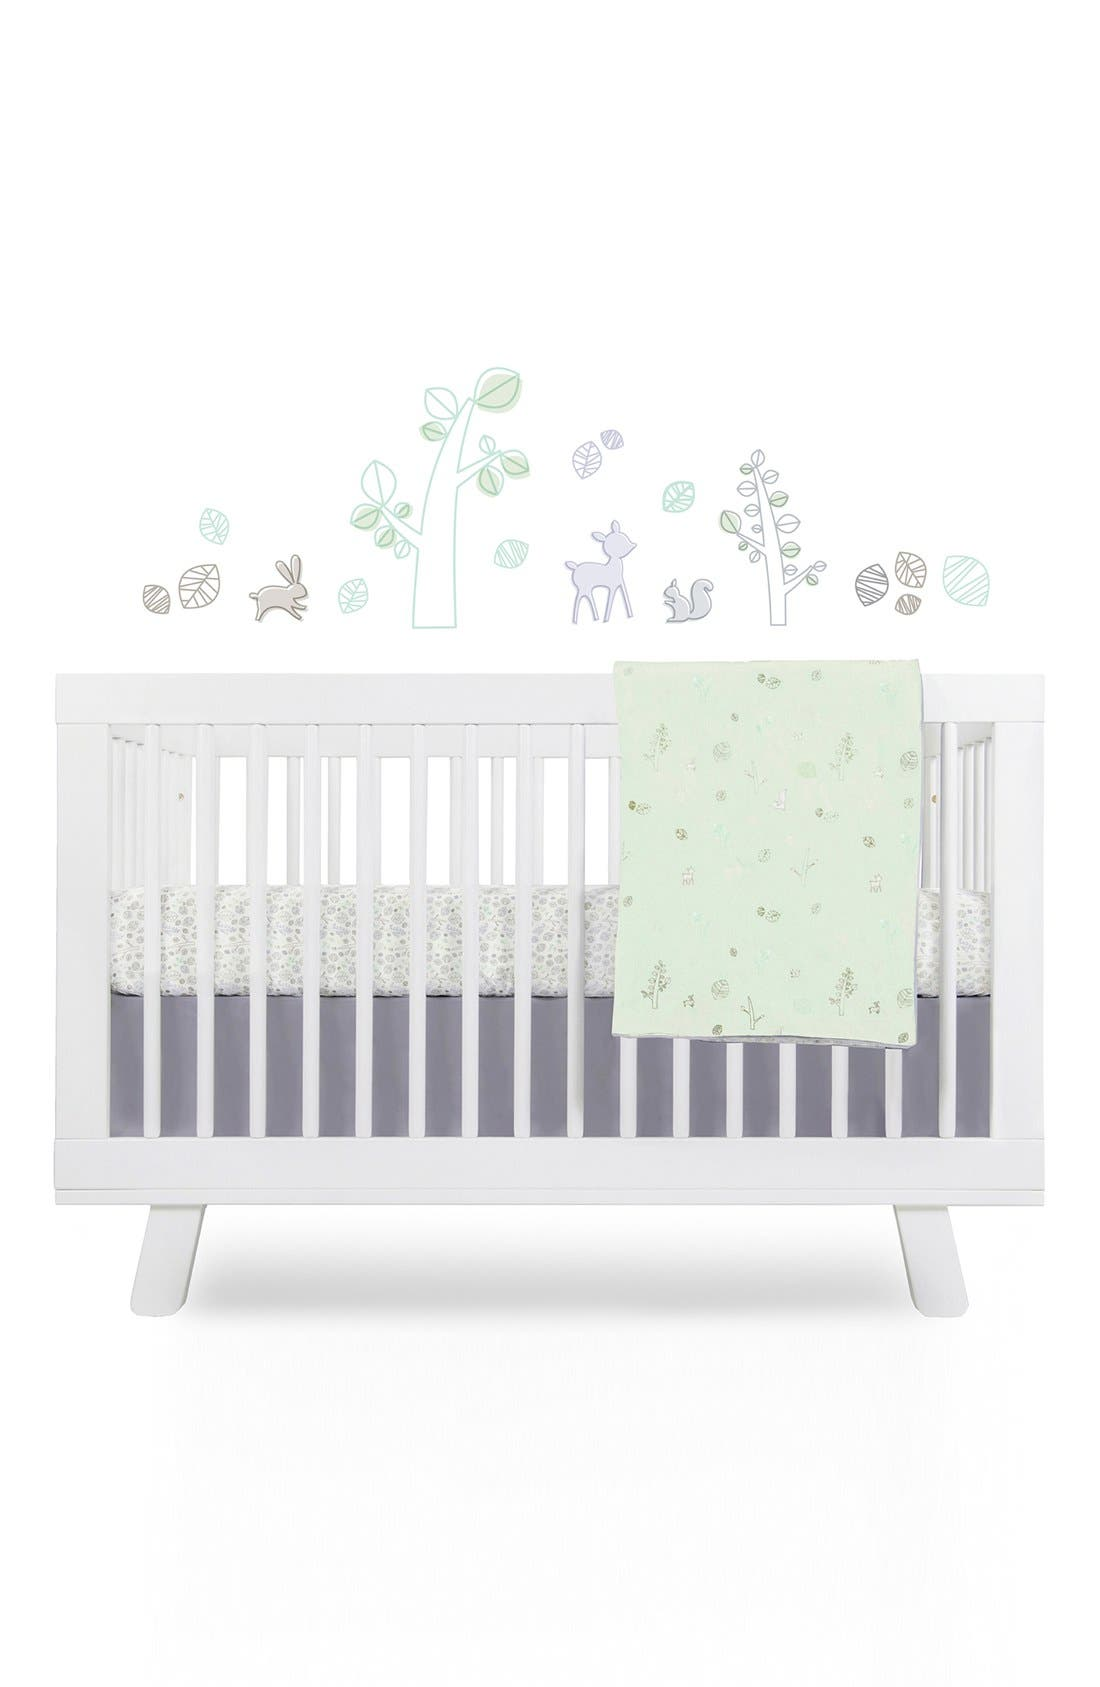 'Woods' Crib Sheet, Crib Skirt, Contour Changing Pad, Play Blanket & Wall Decals,                         Main,                         color, 300